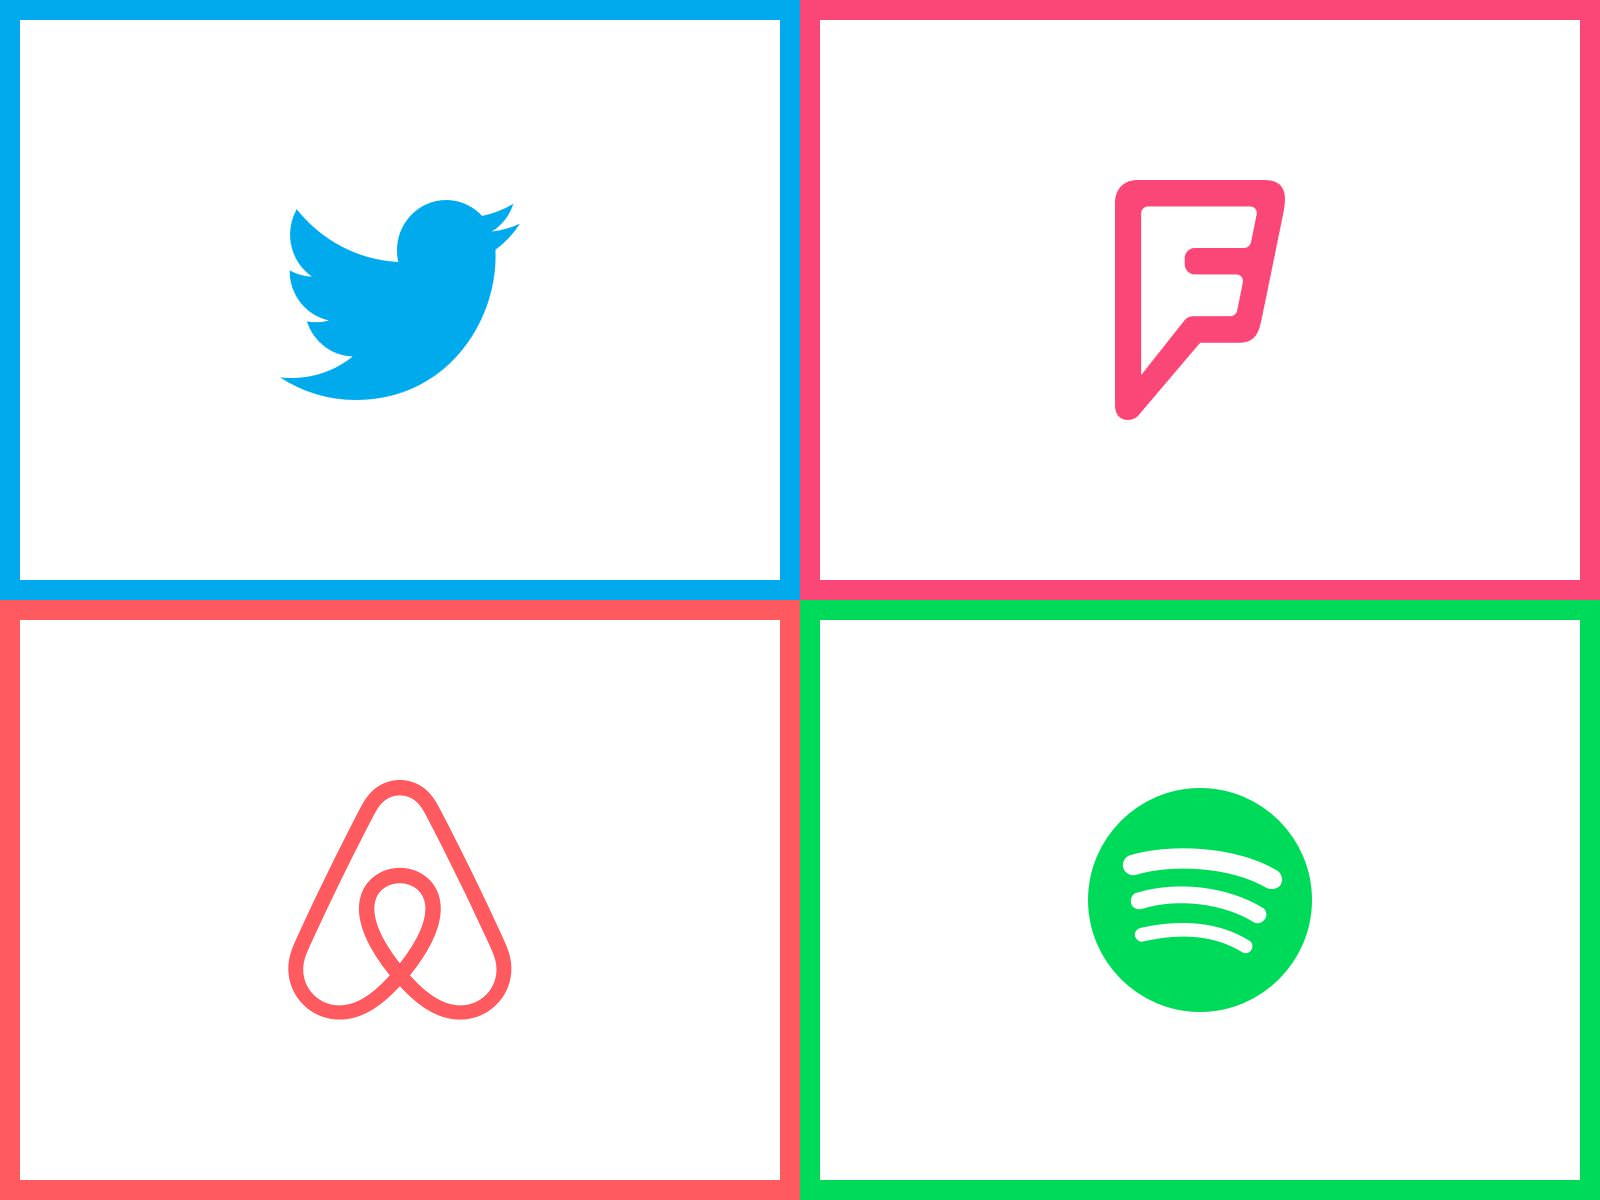 twitter foursquare spotify airbnb logo